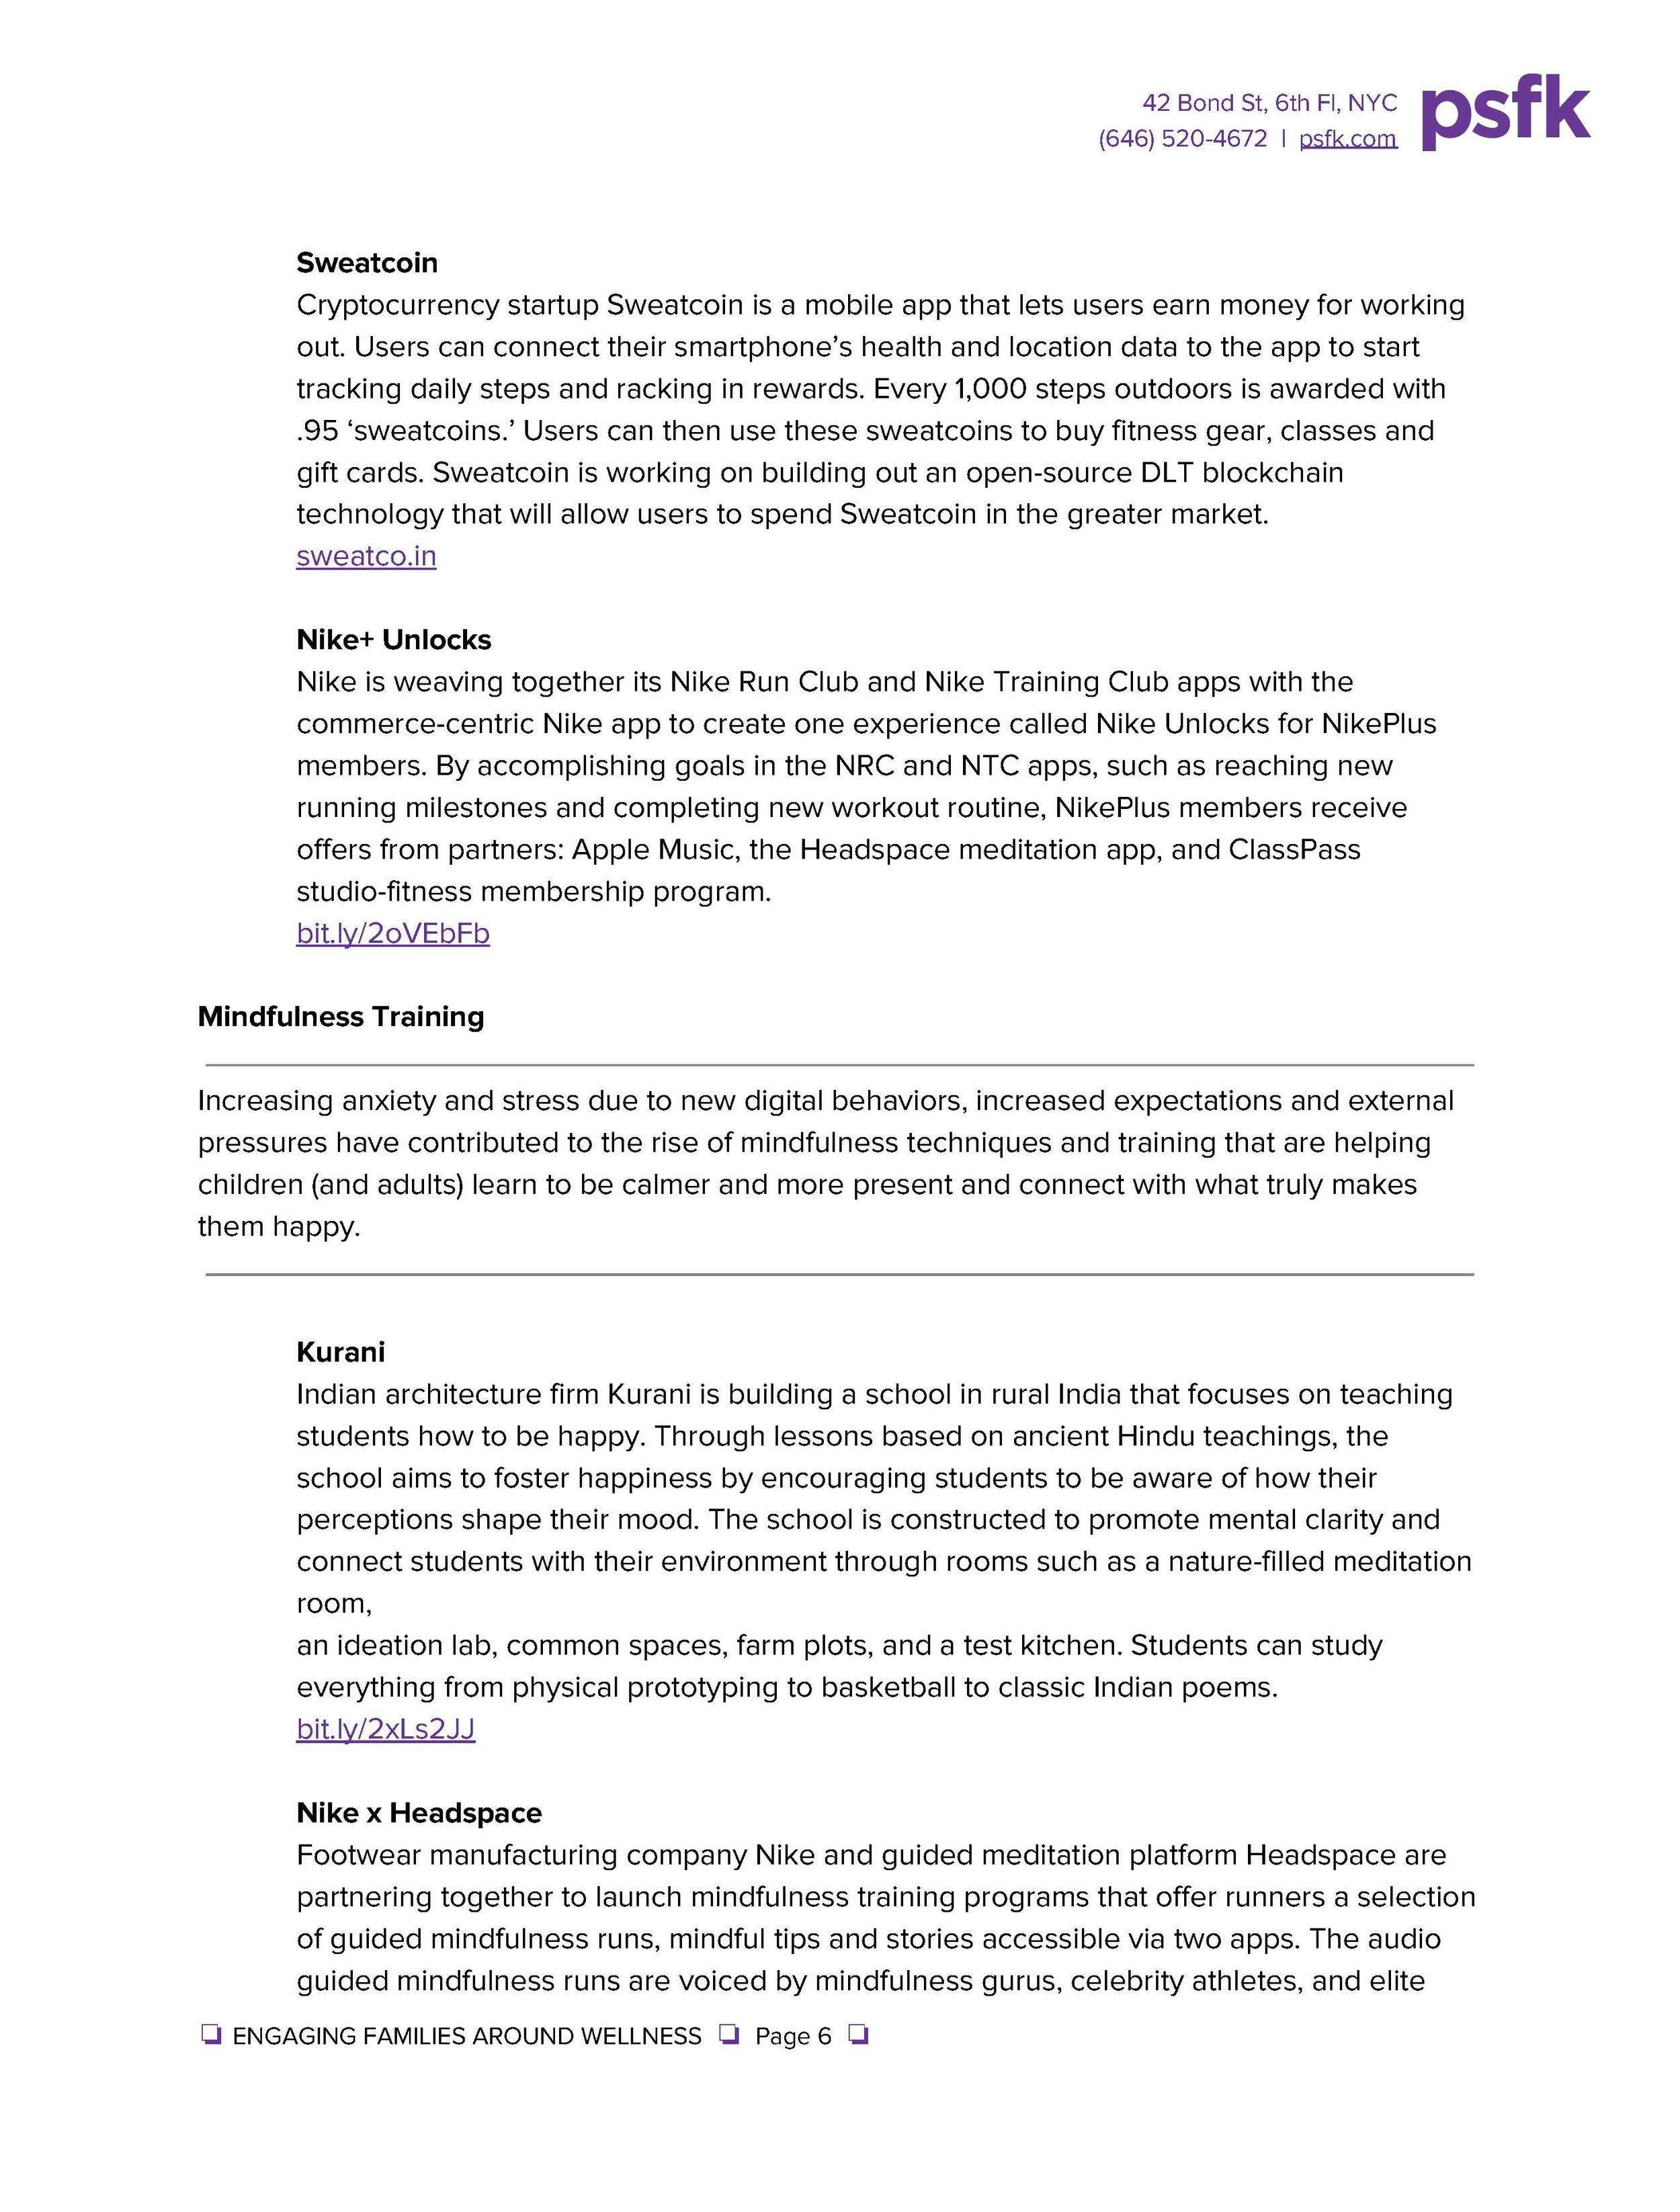 PSFK_Paper_Engaging_Families_Wellness_Page_06.jpg